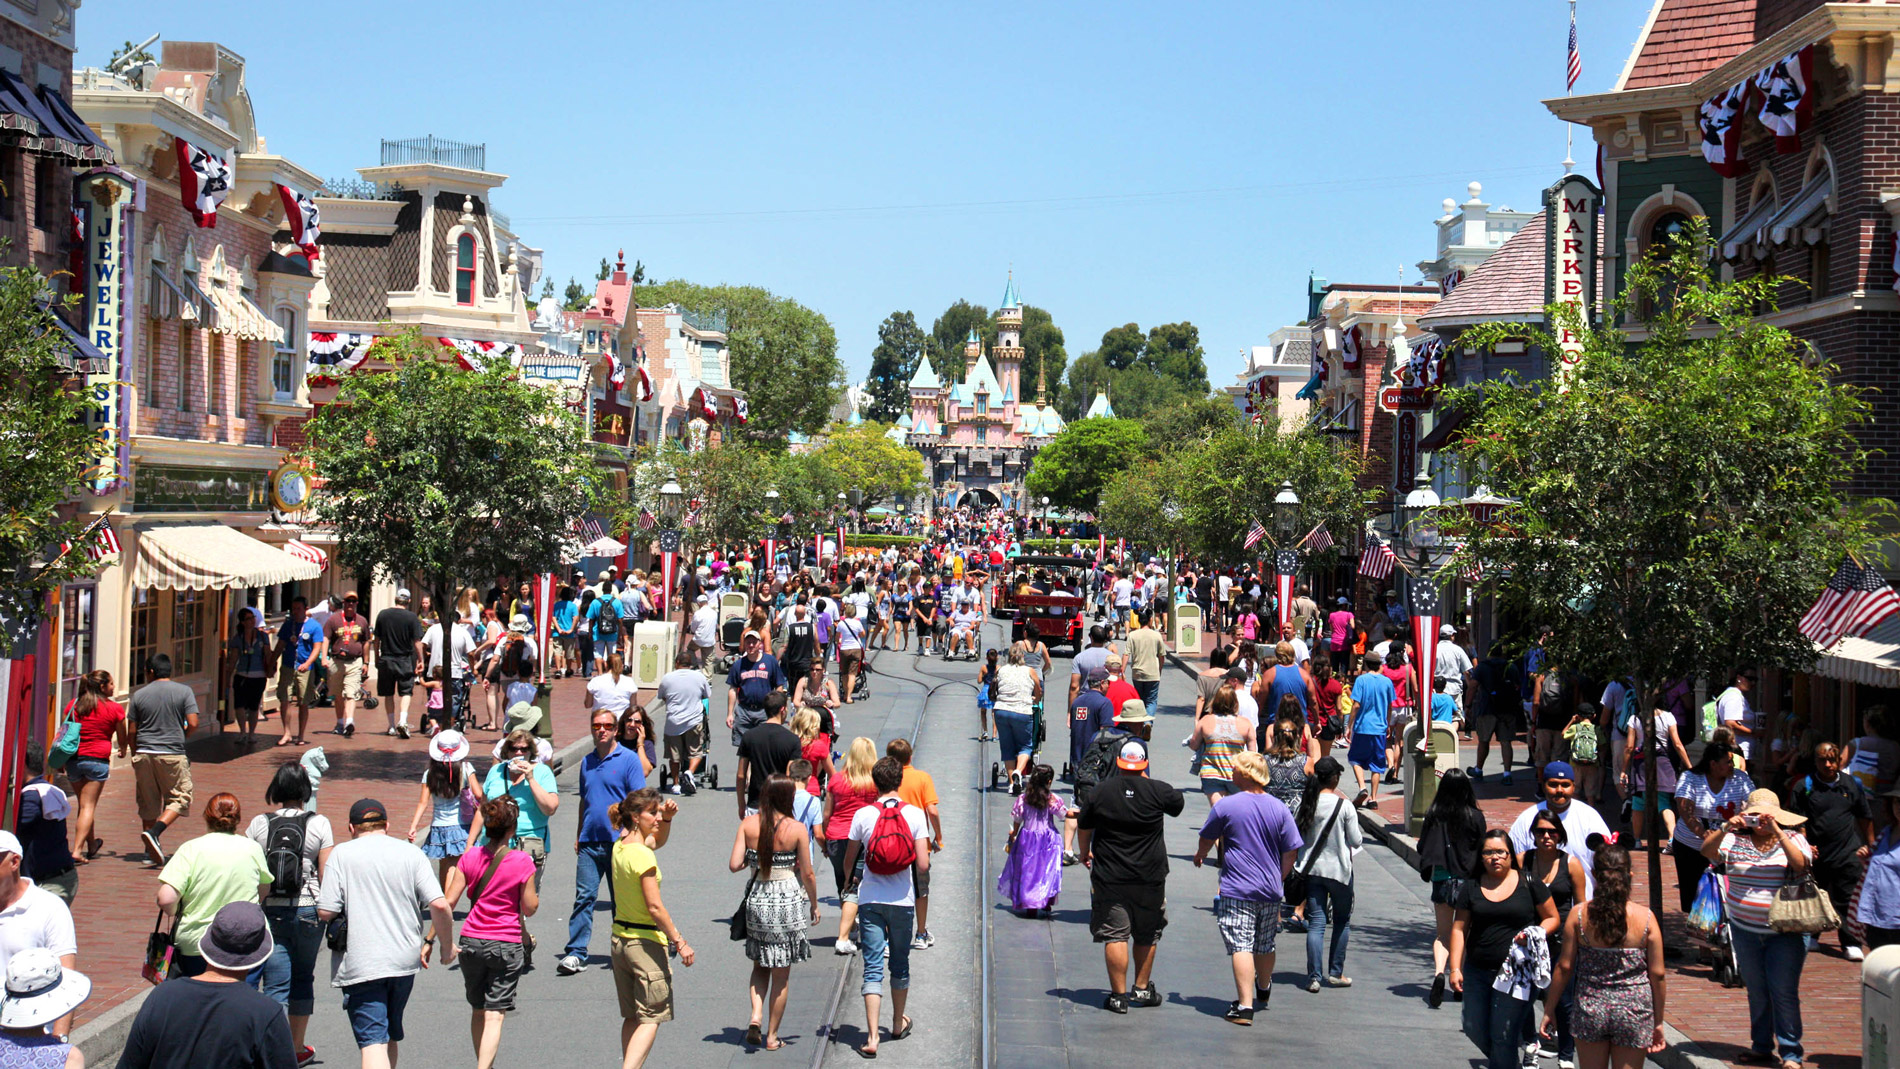 One Day in Disneyland